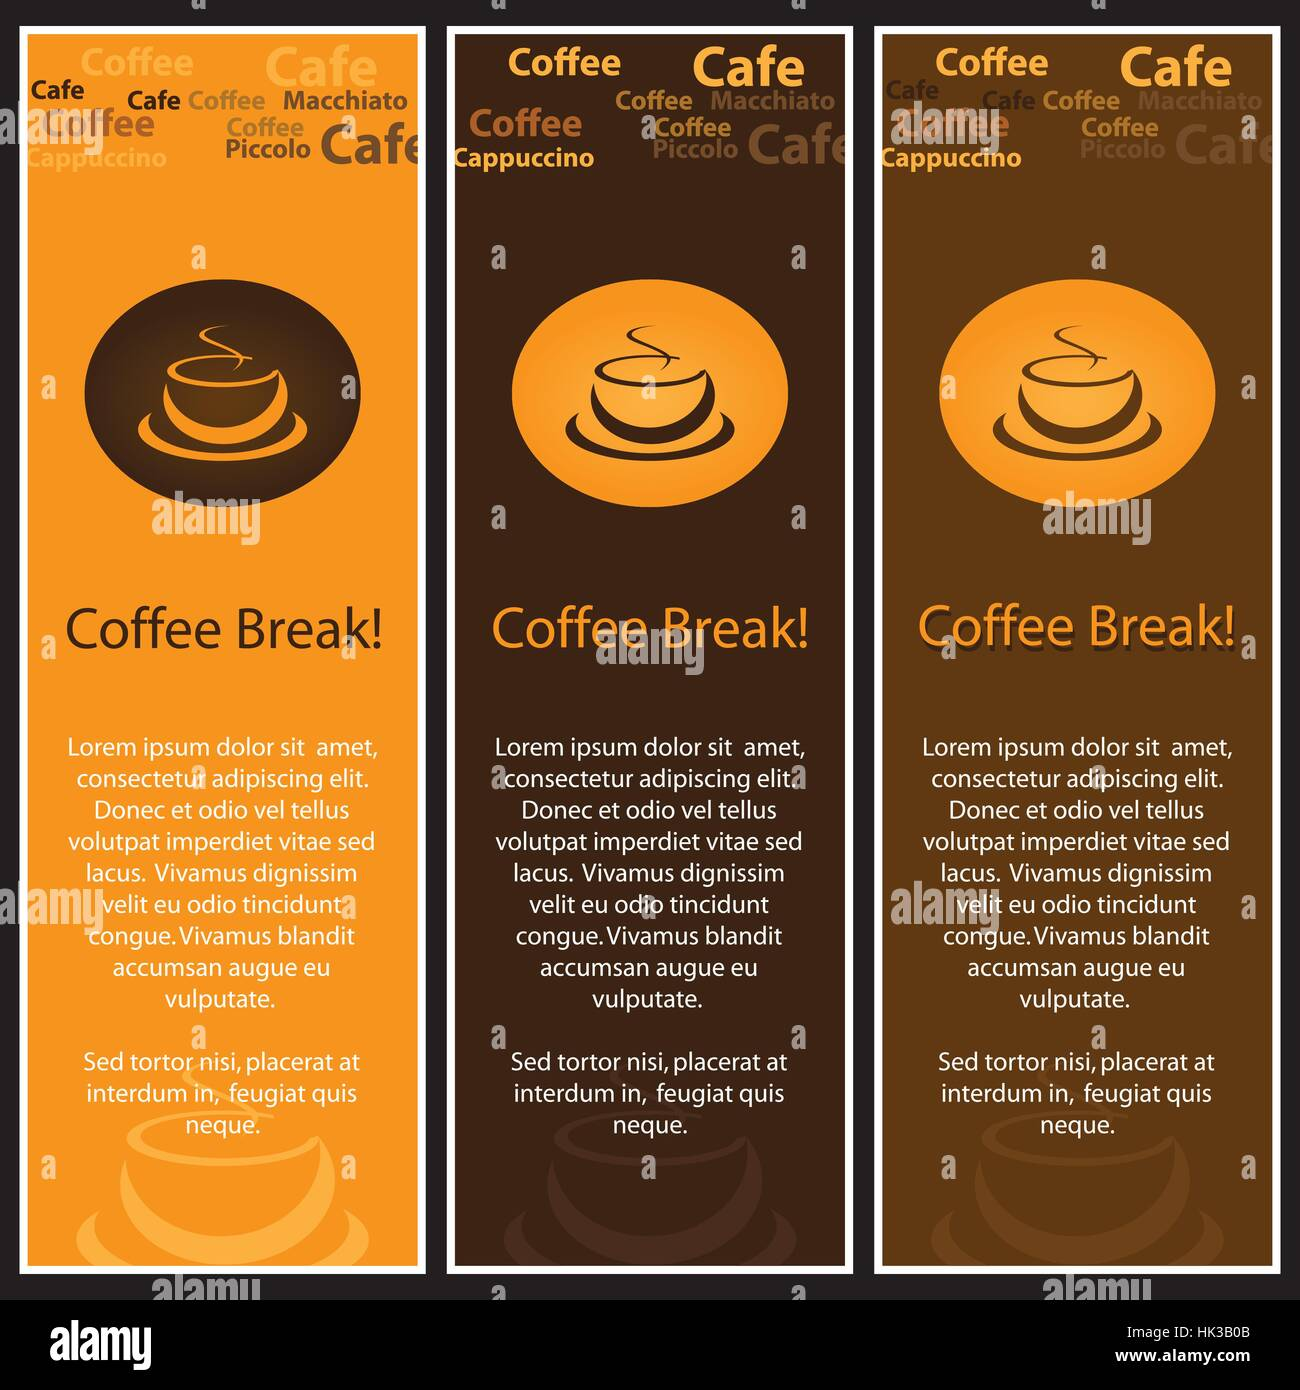 Set Of 3 Coffee Shop Banner Or Menu Template Designs Stock Vector Image Art Alamy